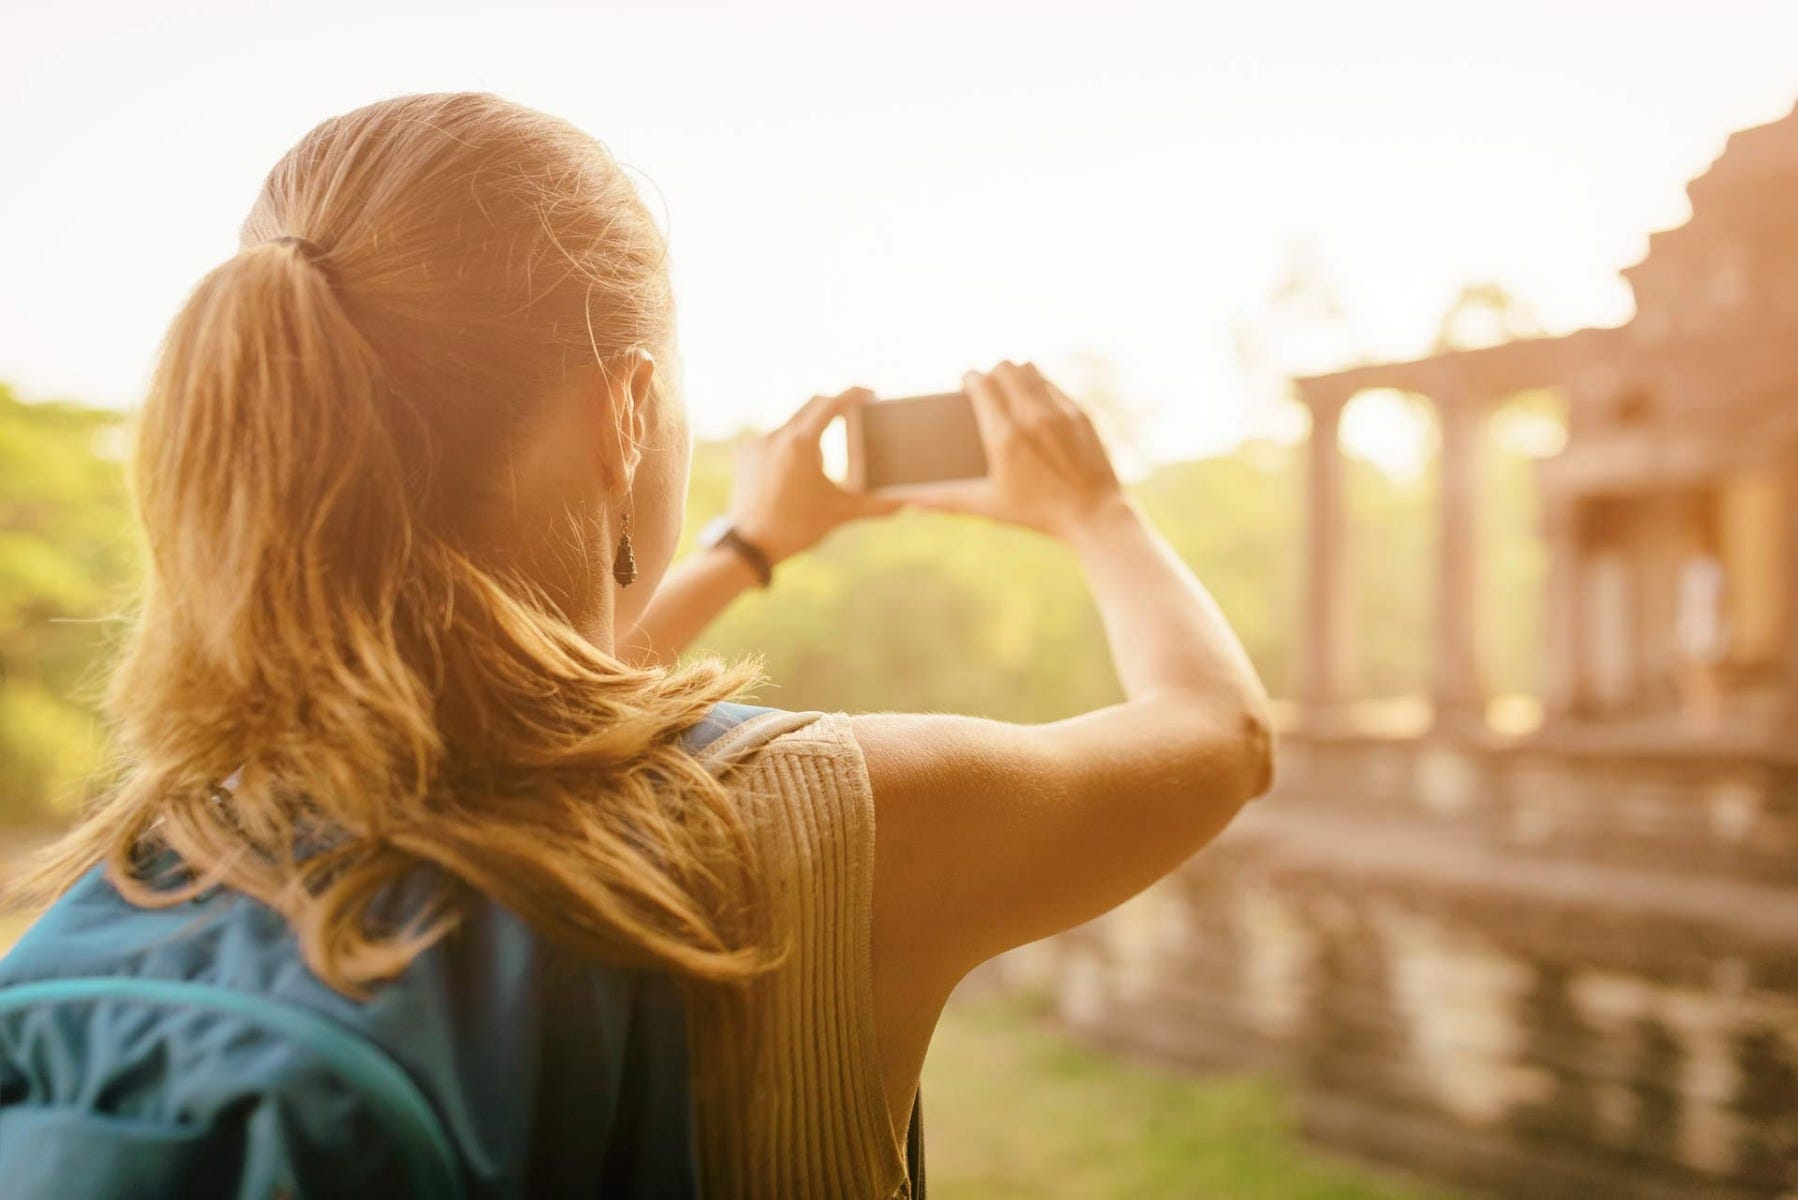 taking pictures with smartphone